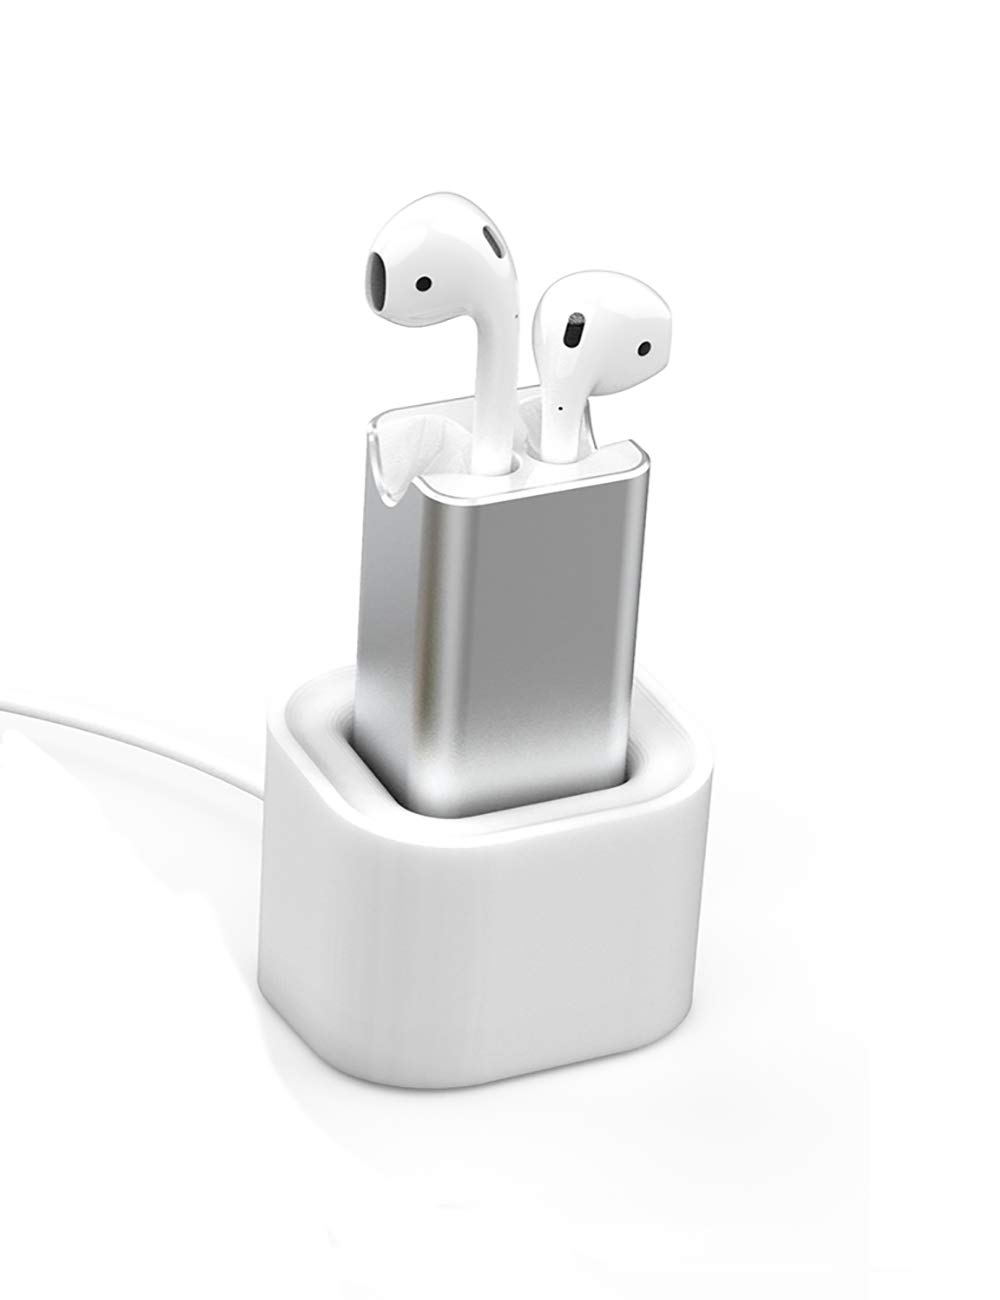 watch 7d9c6 09b22 BLUERIN Airpods Charger Desktop Charging Adapter with Stand Holder and in  Car Charging Wireless Headphones Earbuds Accessories Airpod 1st & 2nd ...